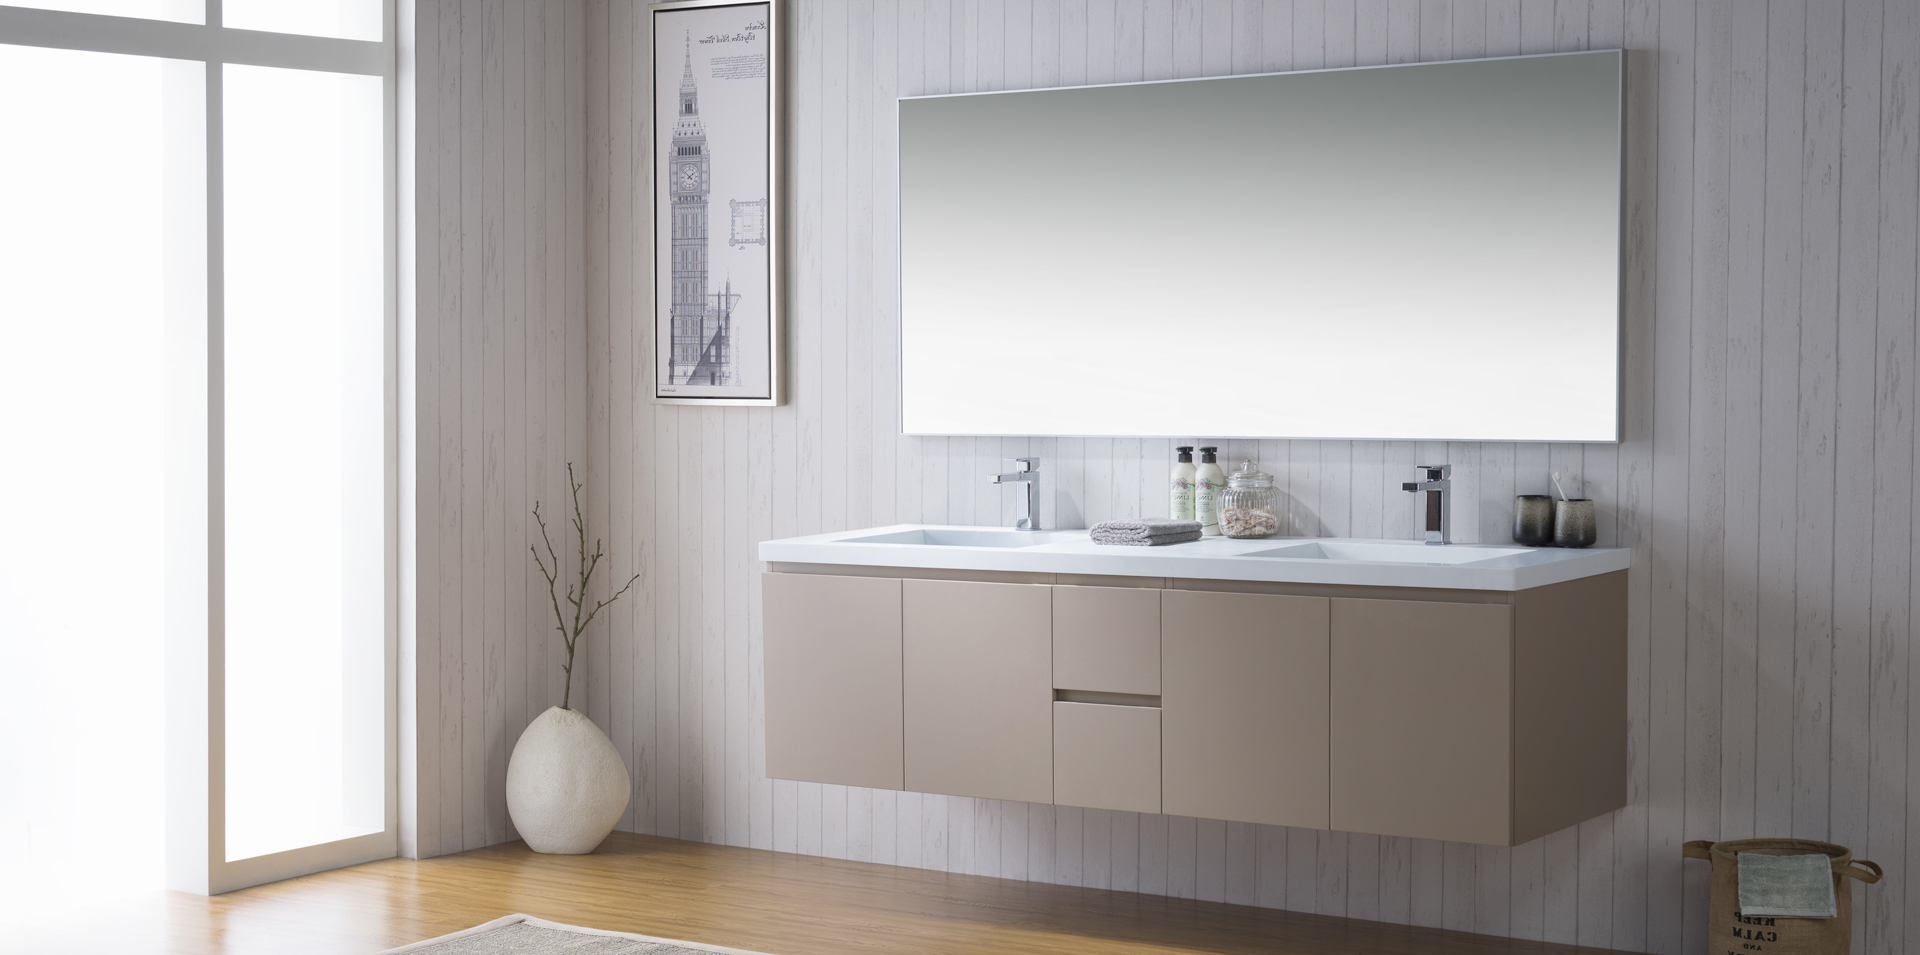 modern bathroom vanities cabinets faucets bathroom place miami - Bathroom Accessories Miami